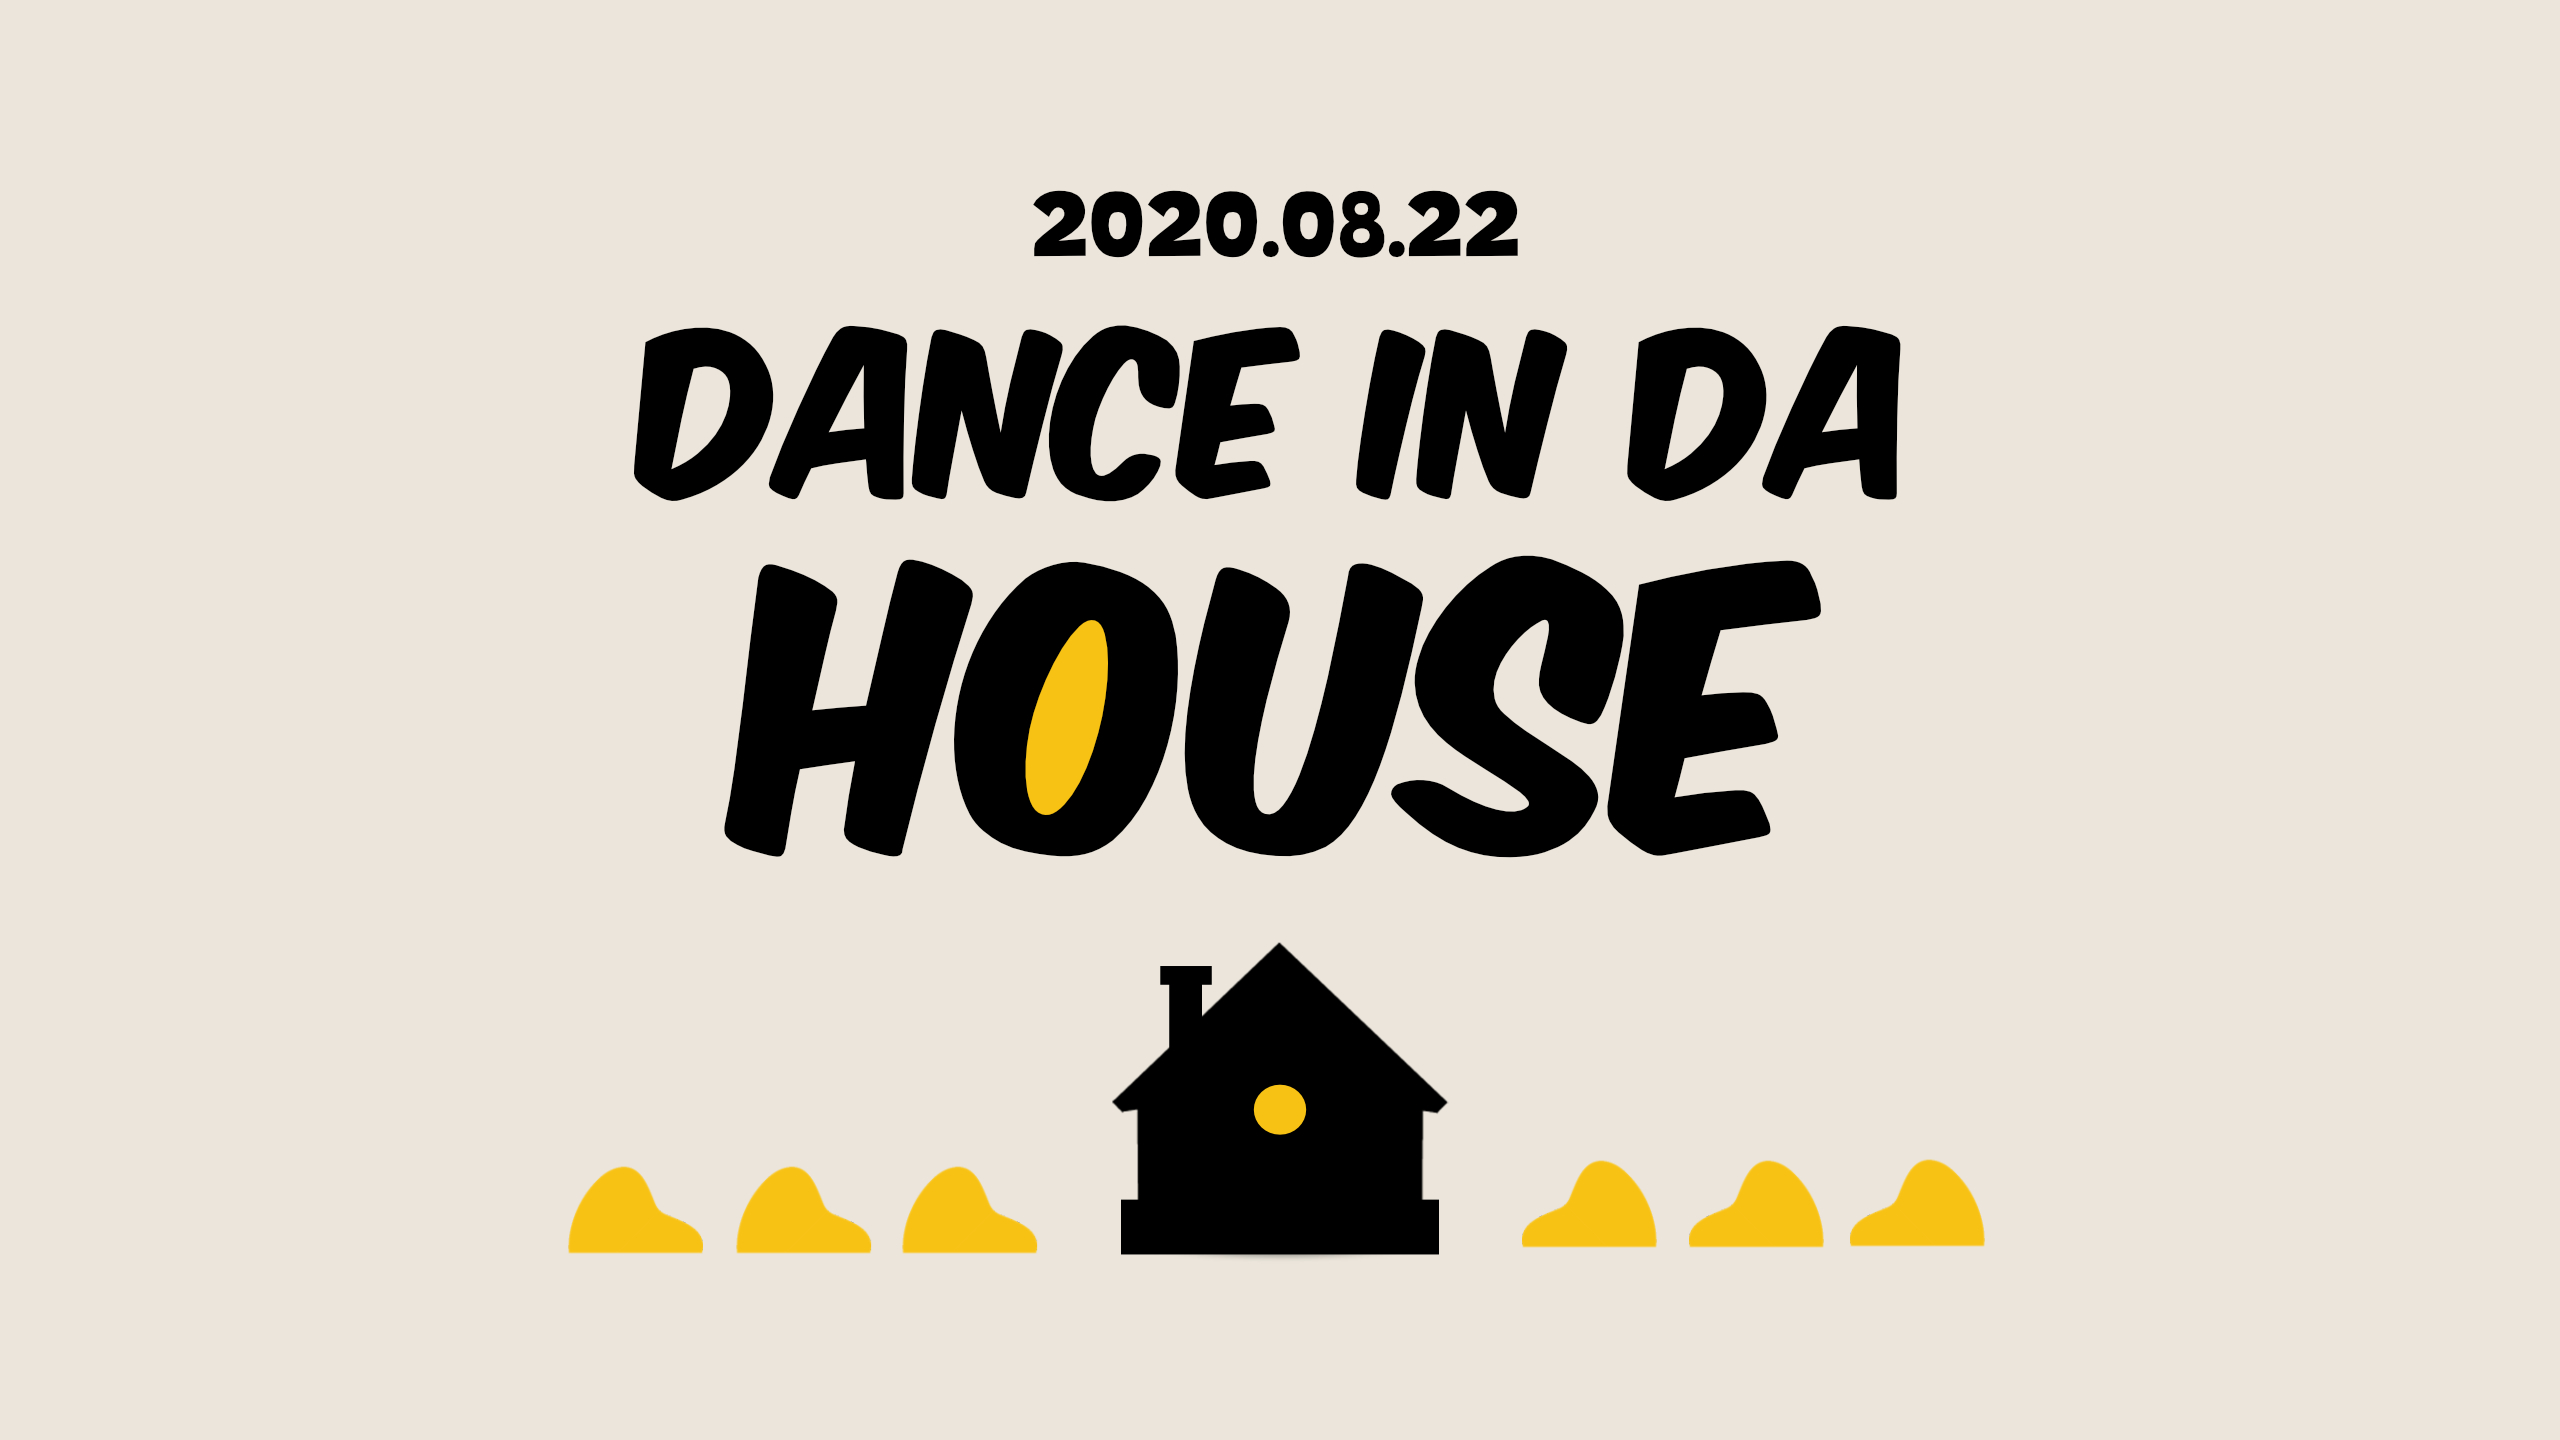 DANCE IN DA HOUSE ロゴ